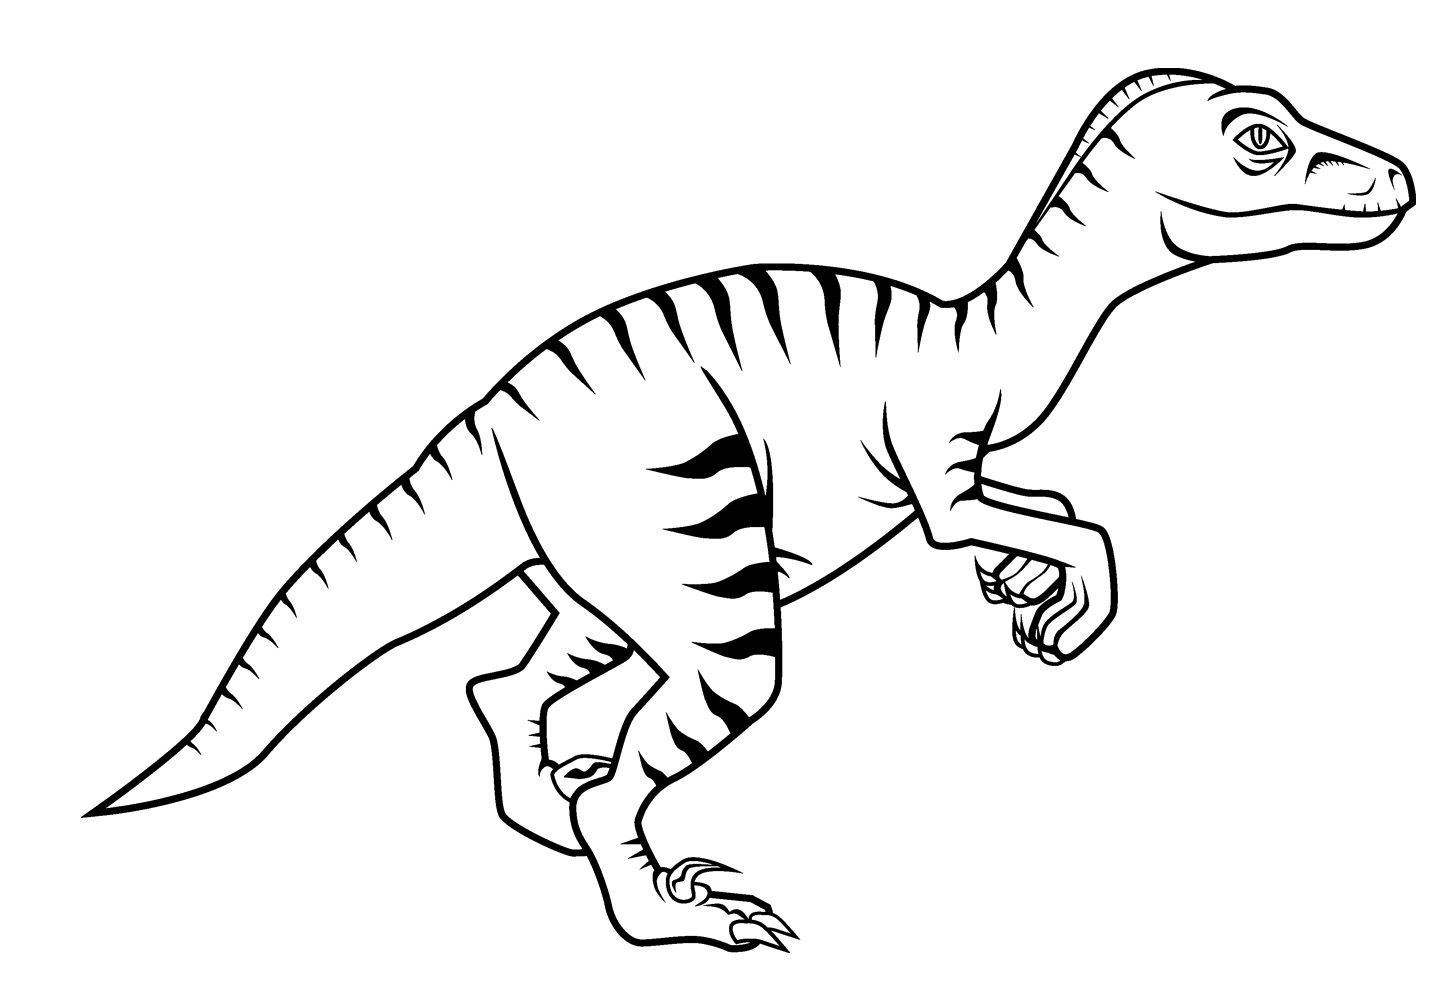 Free Velociraptor Coloring Page Animal Coloring Pages Coloring Pages Dinosaur Coloring Pages